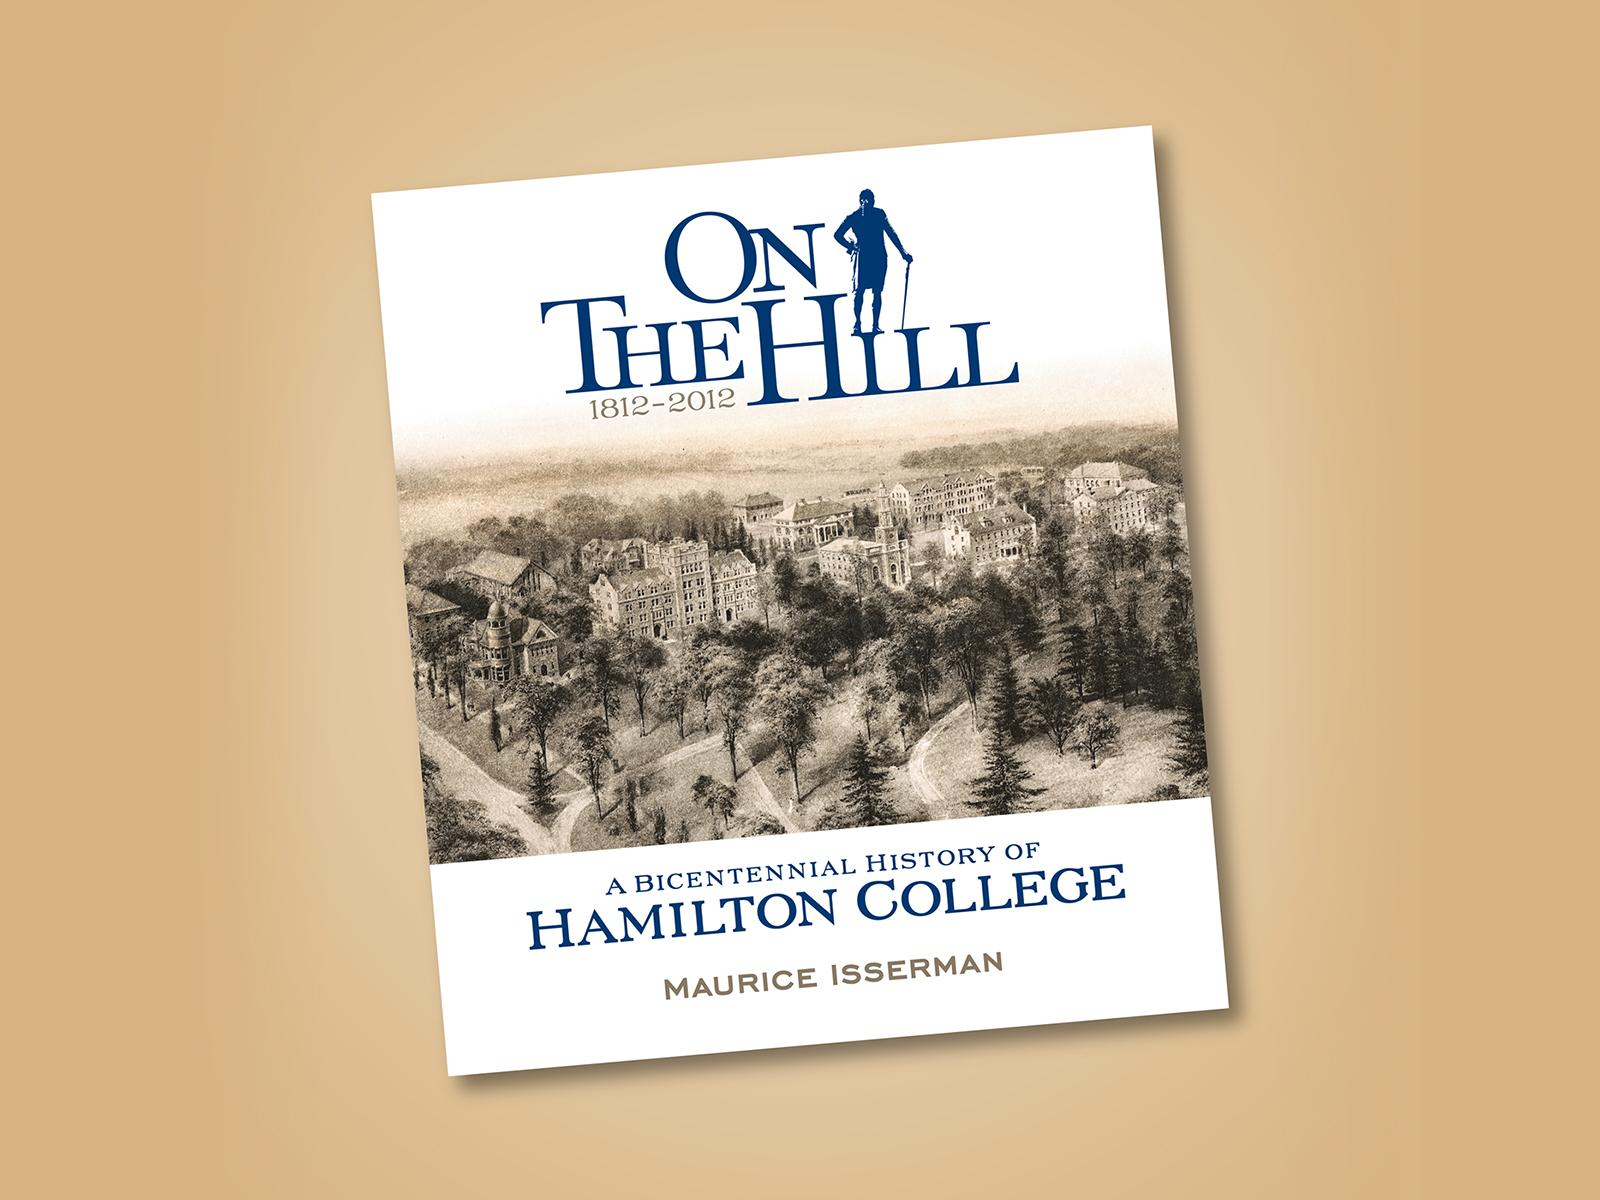 On the Hill Book cover